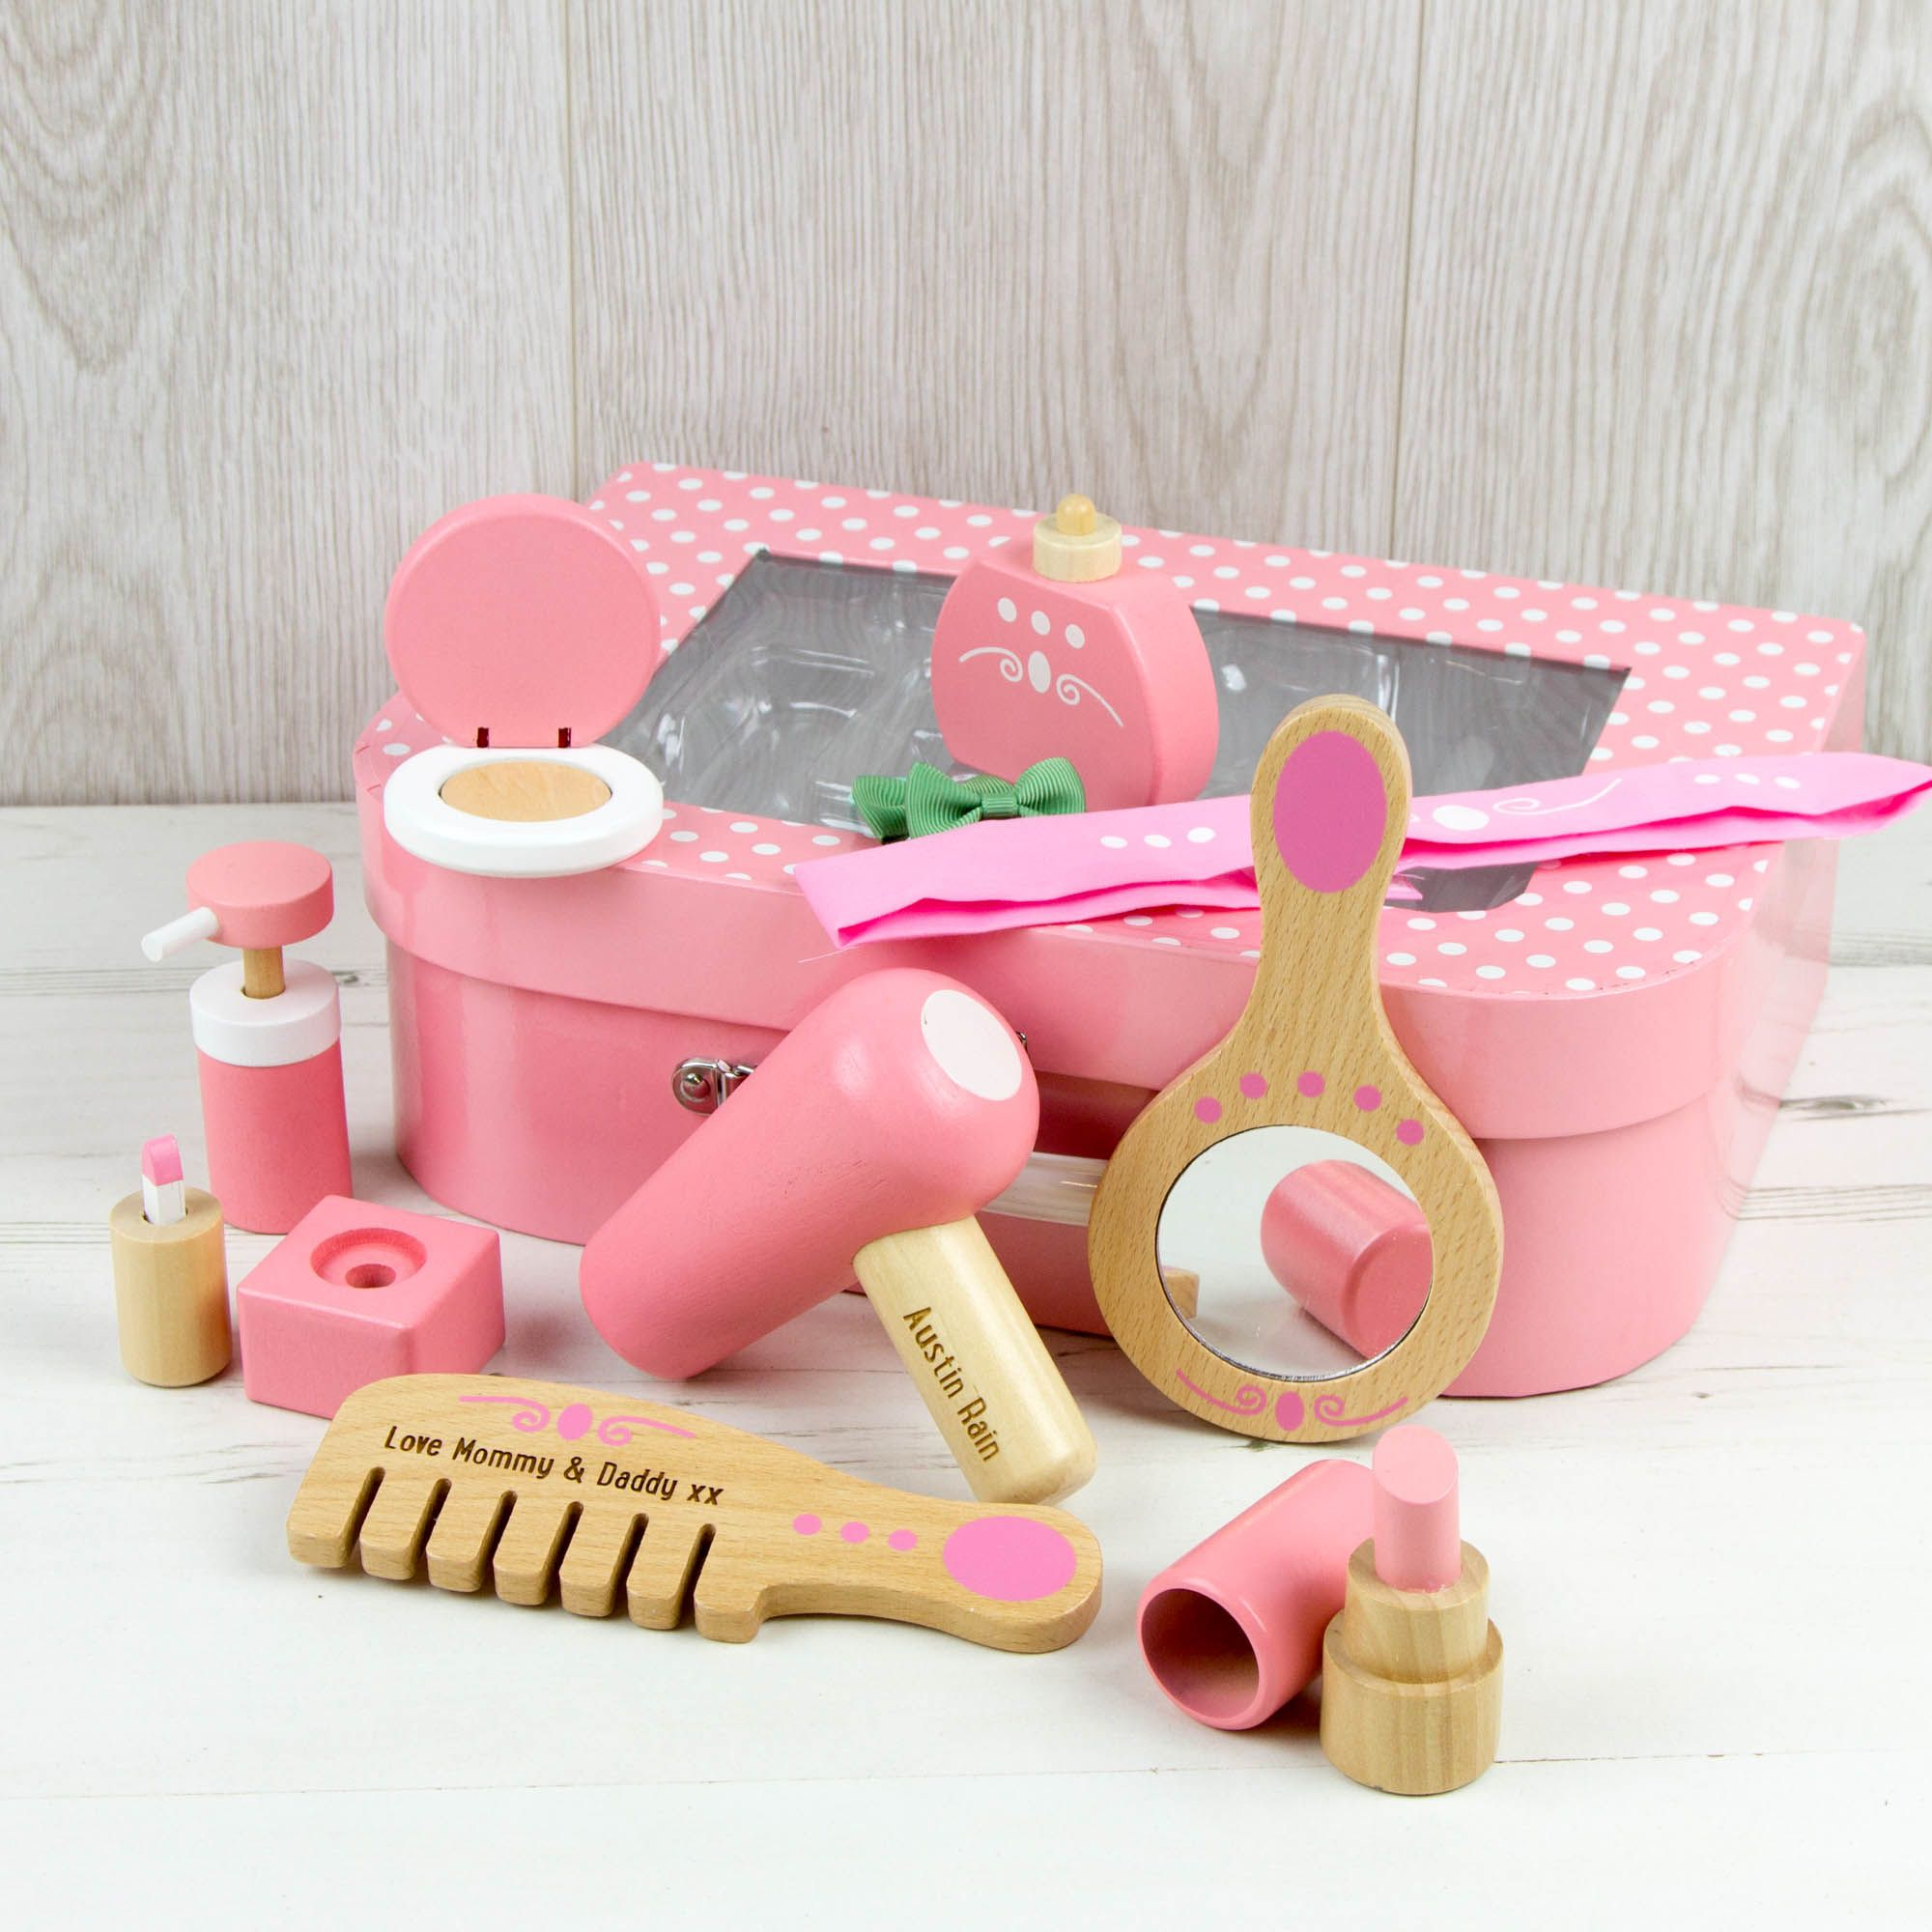 Vanity Set in a Case Toy Personalised (With images